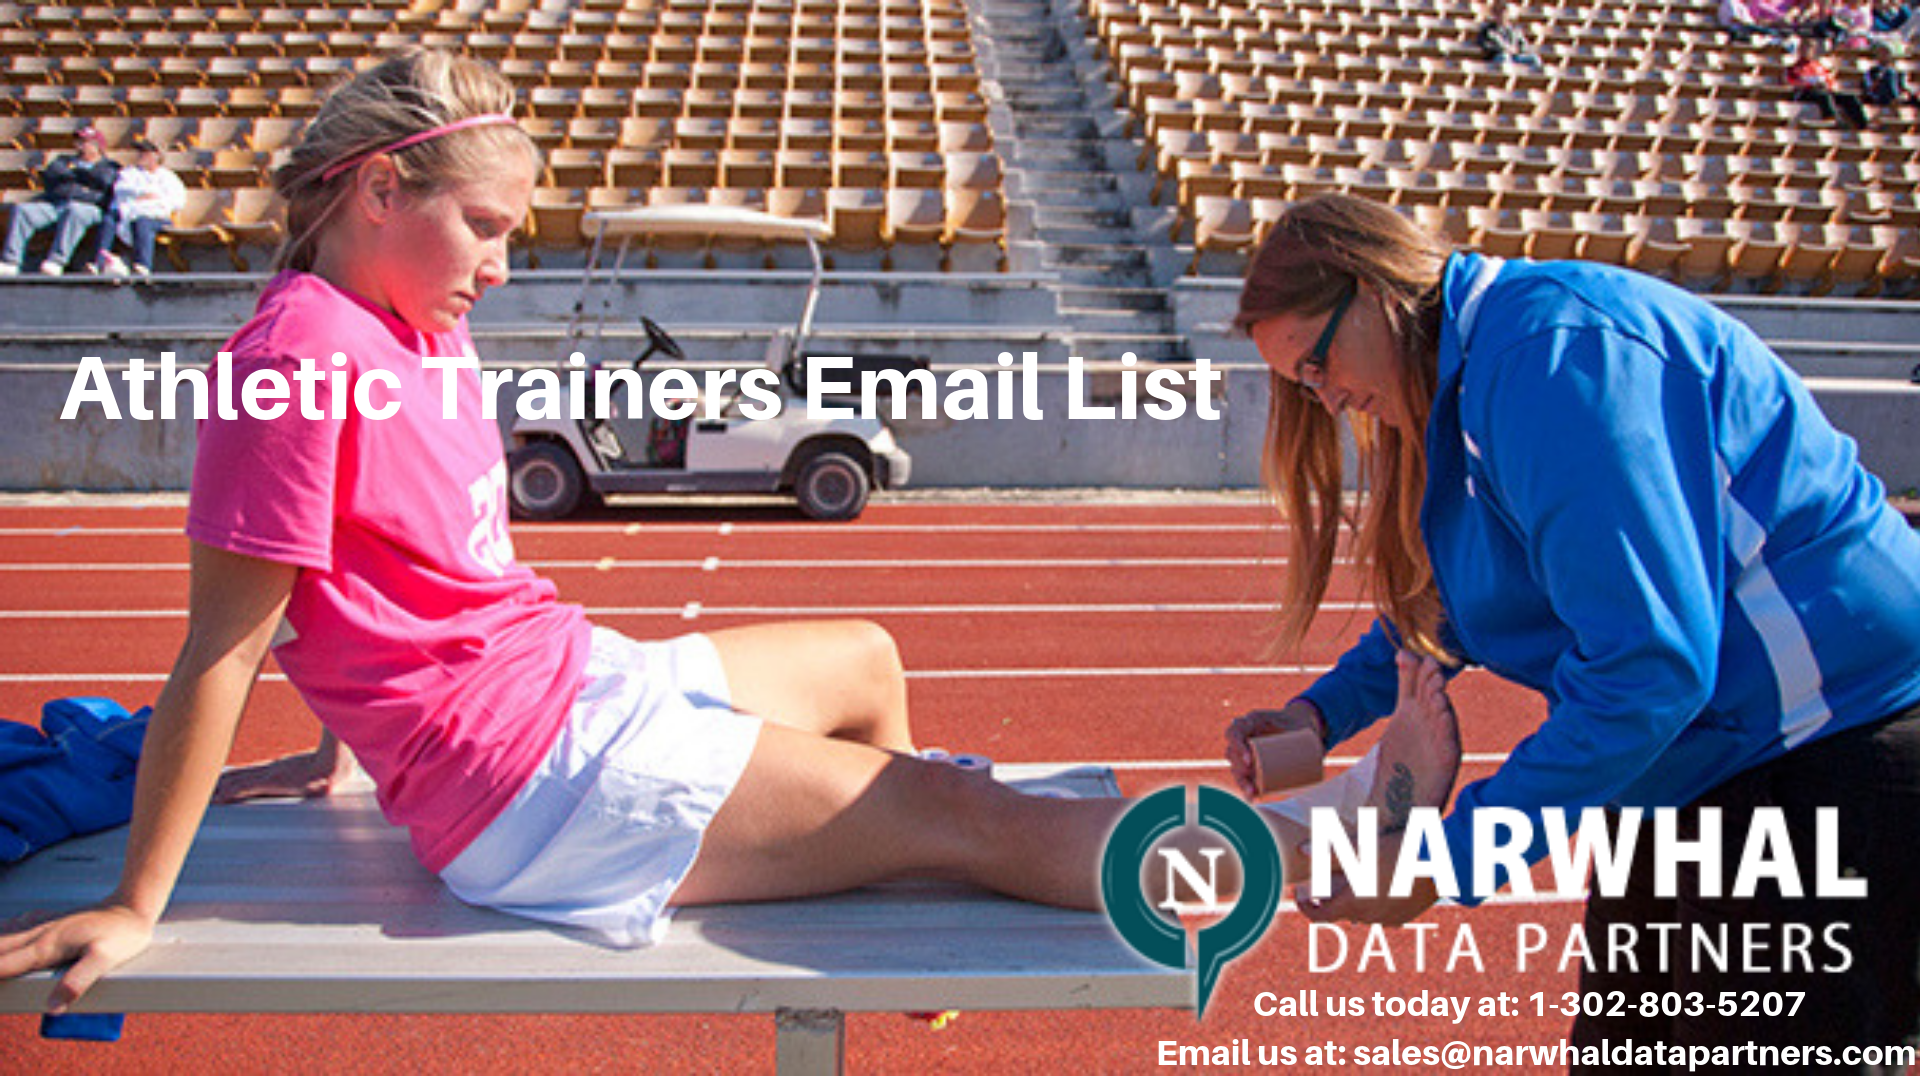 http://narwhaldatapartners.com/athletic-trainers-email-list.html